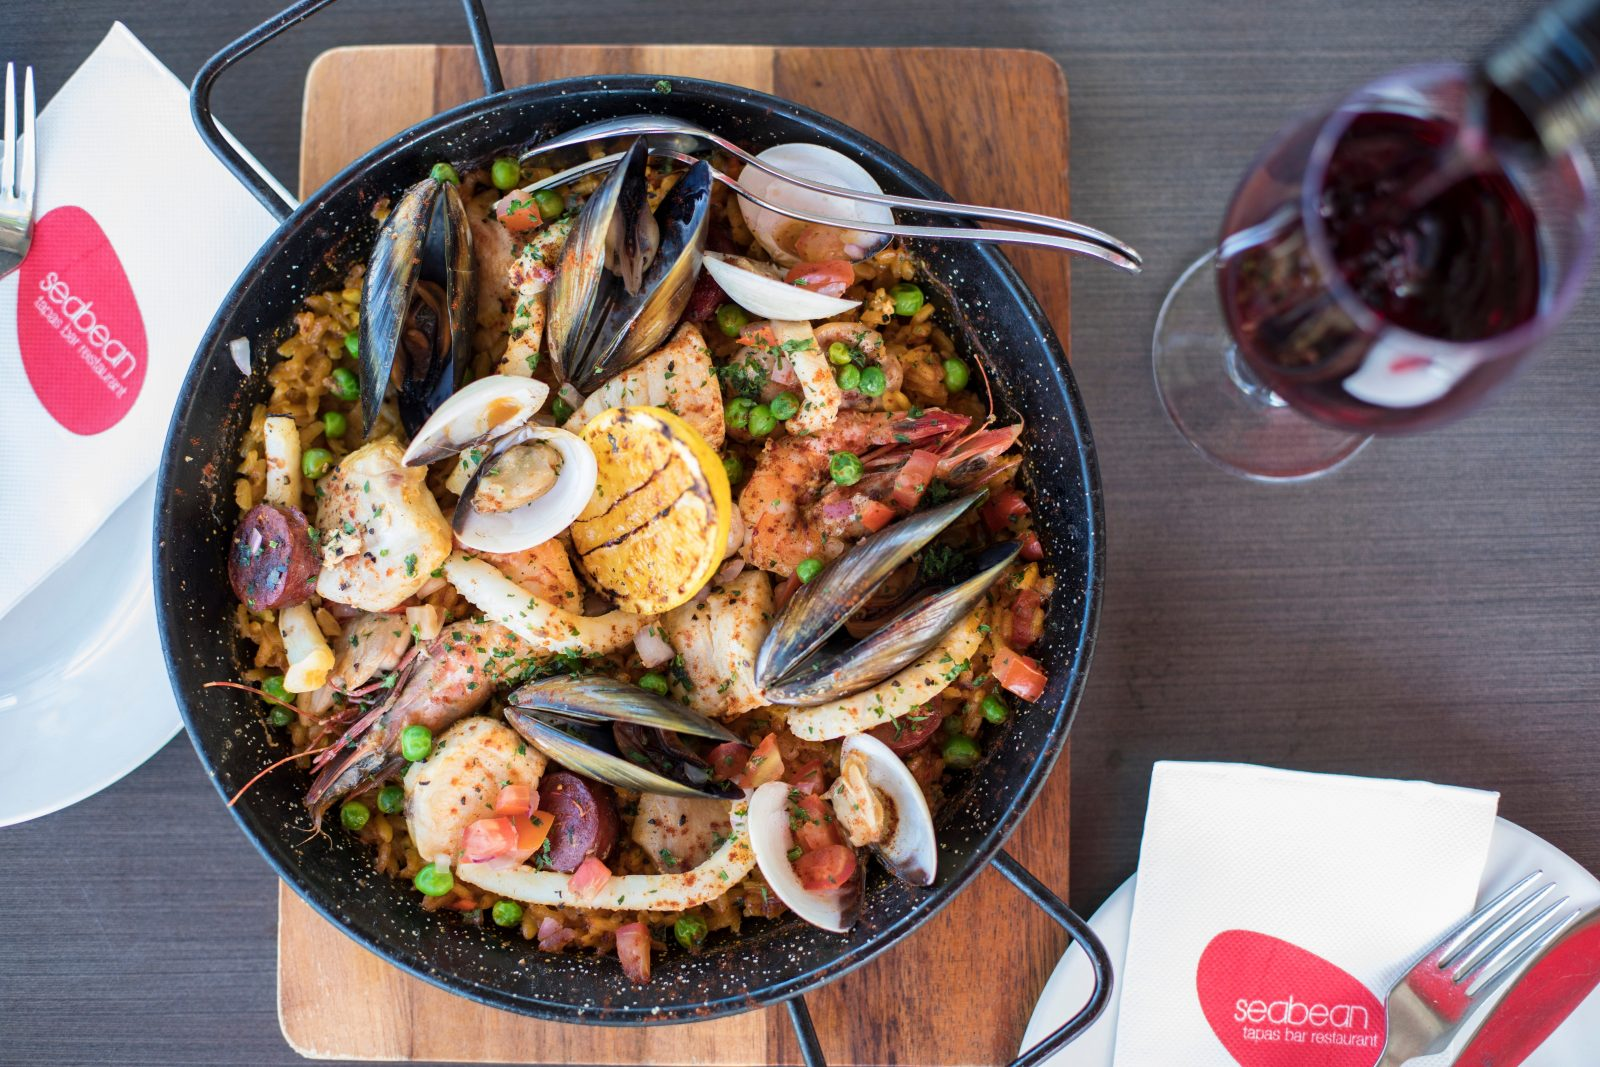 Valencia paella with chicken, chorizo, seafood